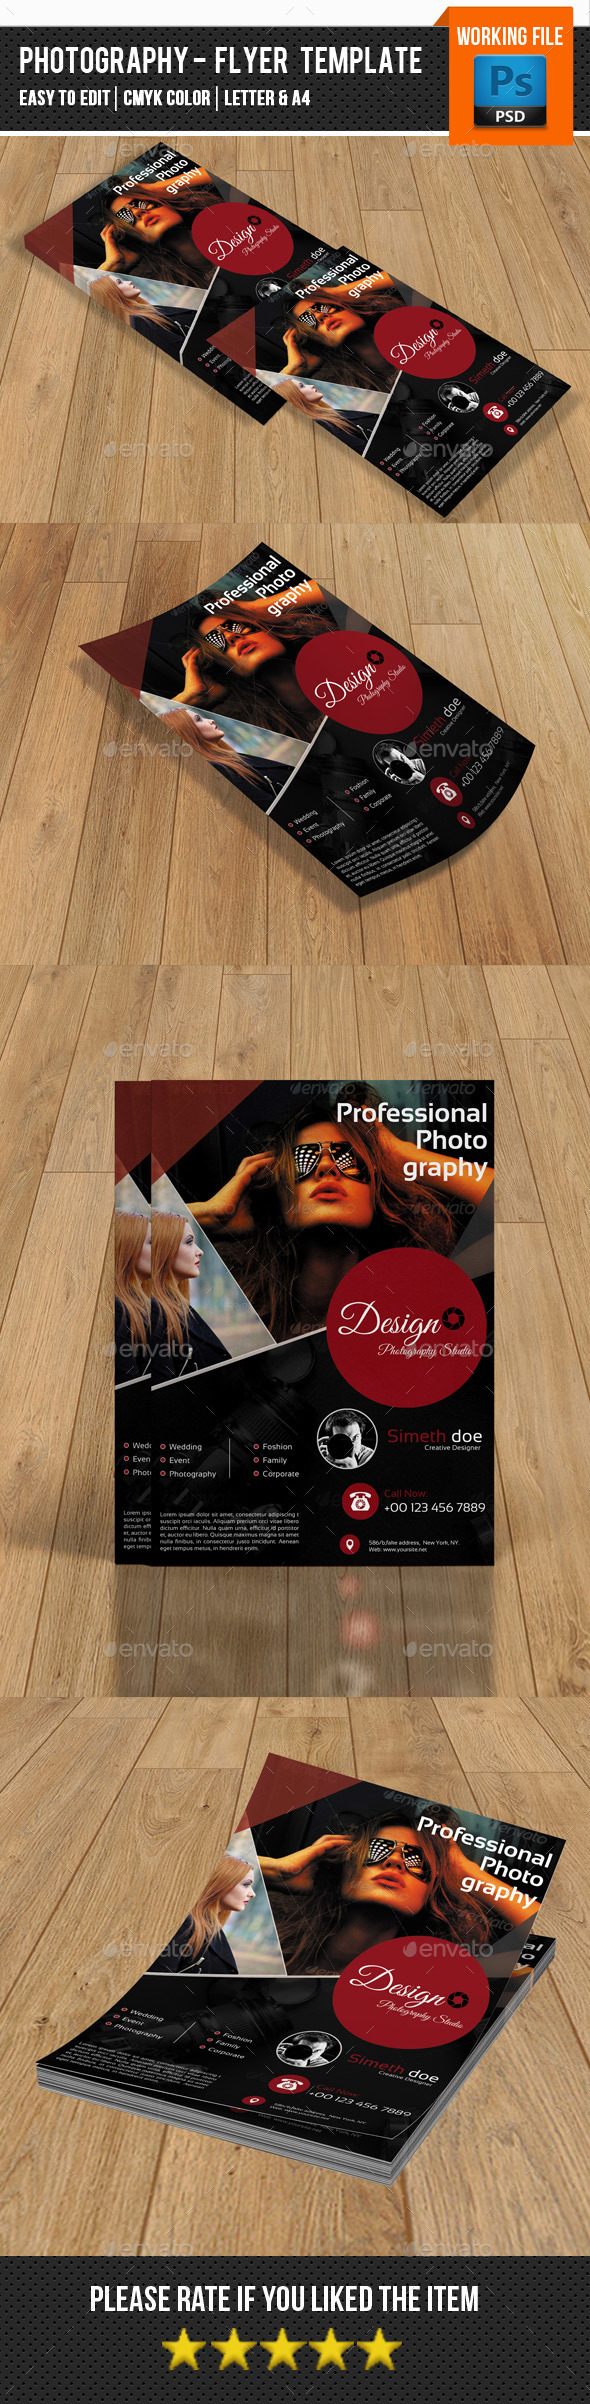 Photography Flyer Template-V126 - Corporate Flyers